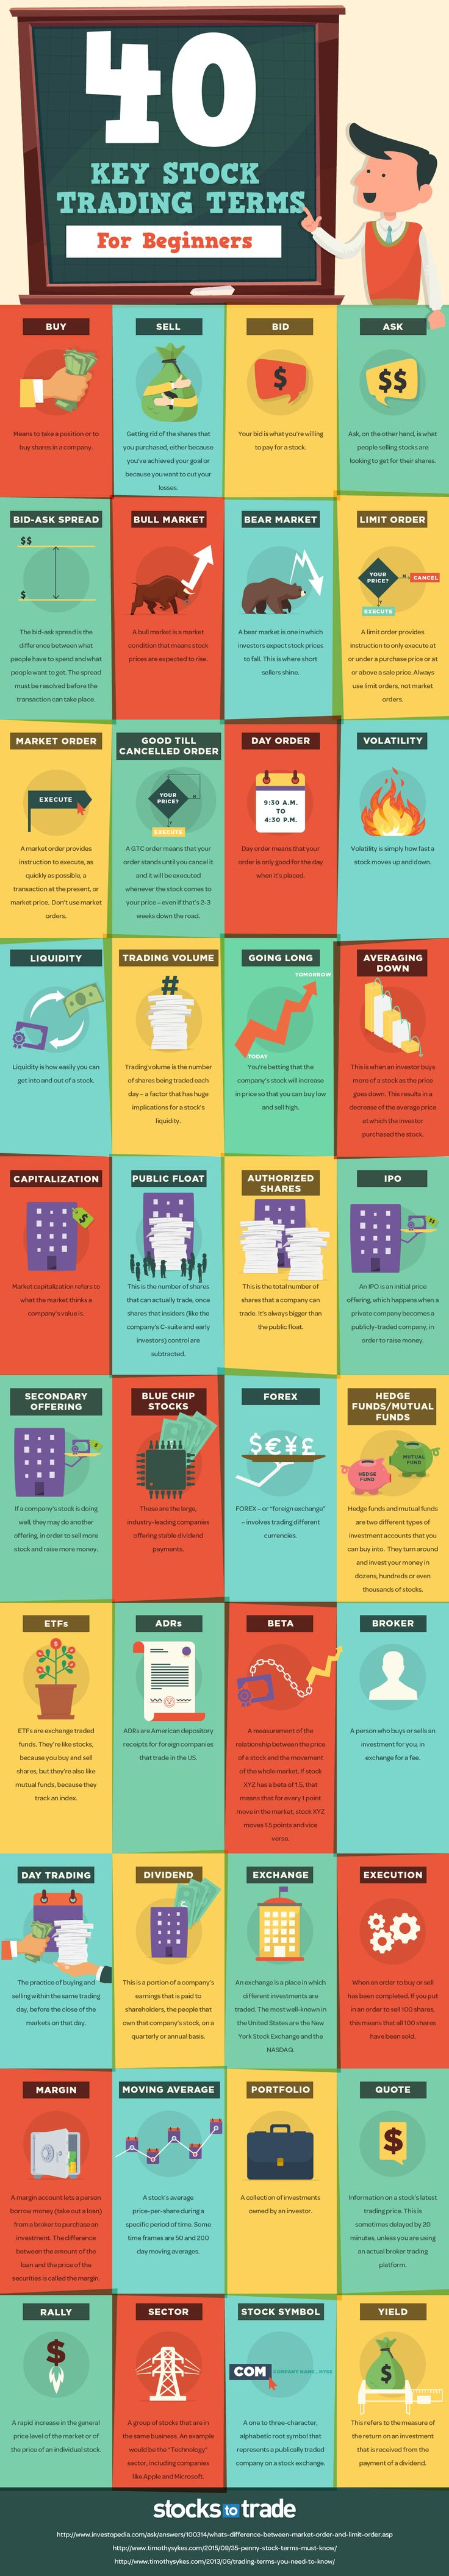 40 Key Stock Trading Terms For Beginners #Infographic #Stock #Trading